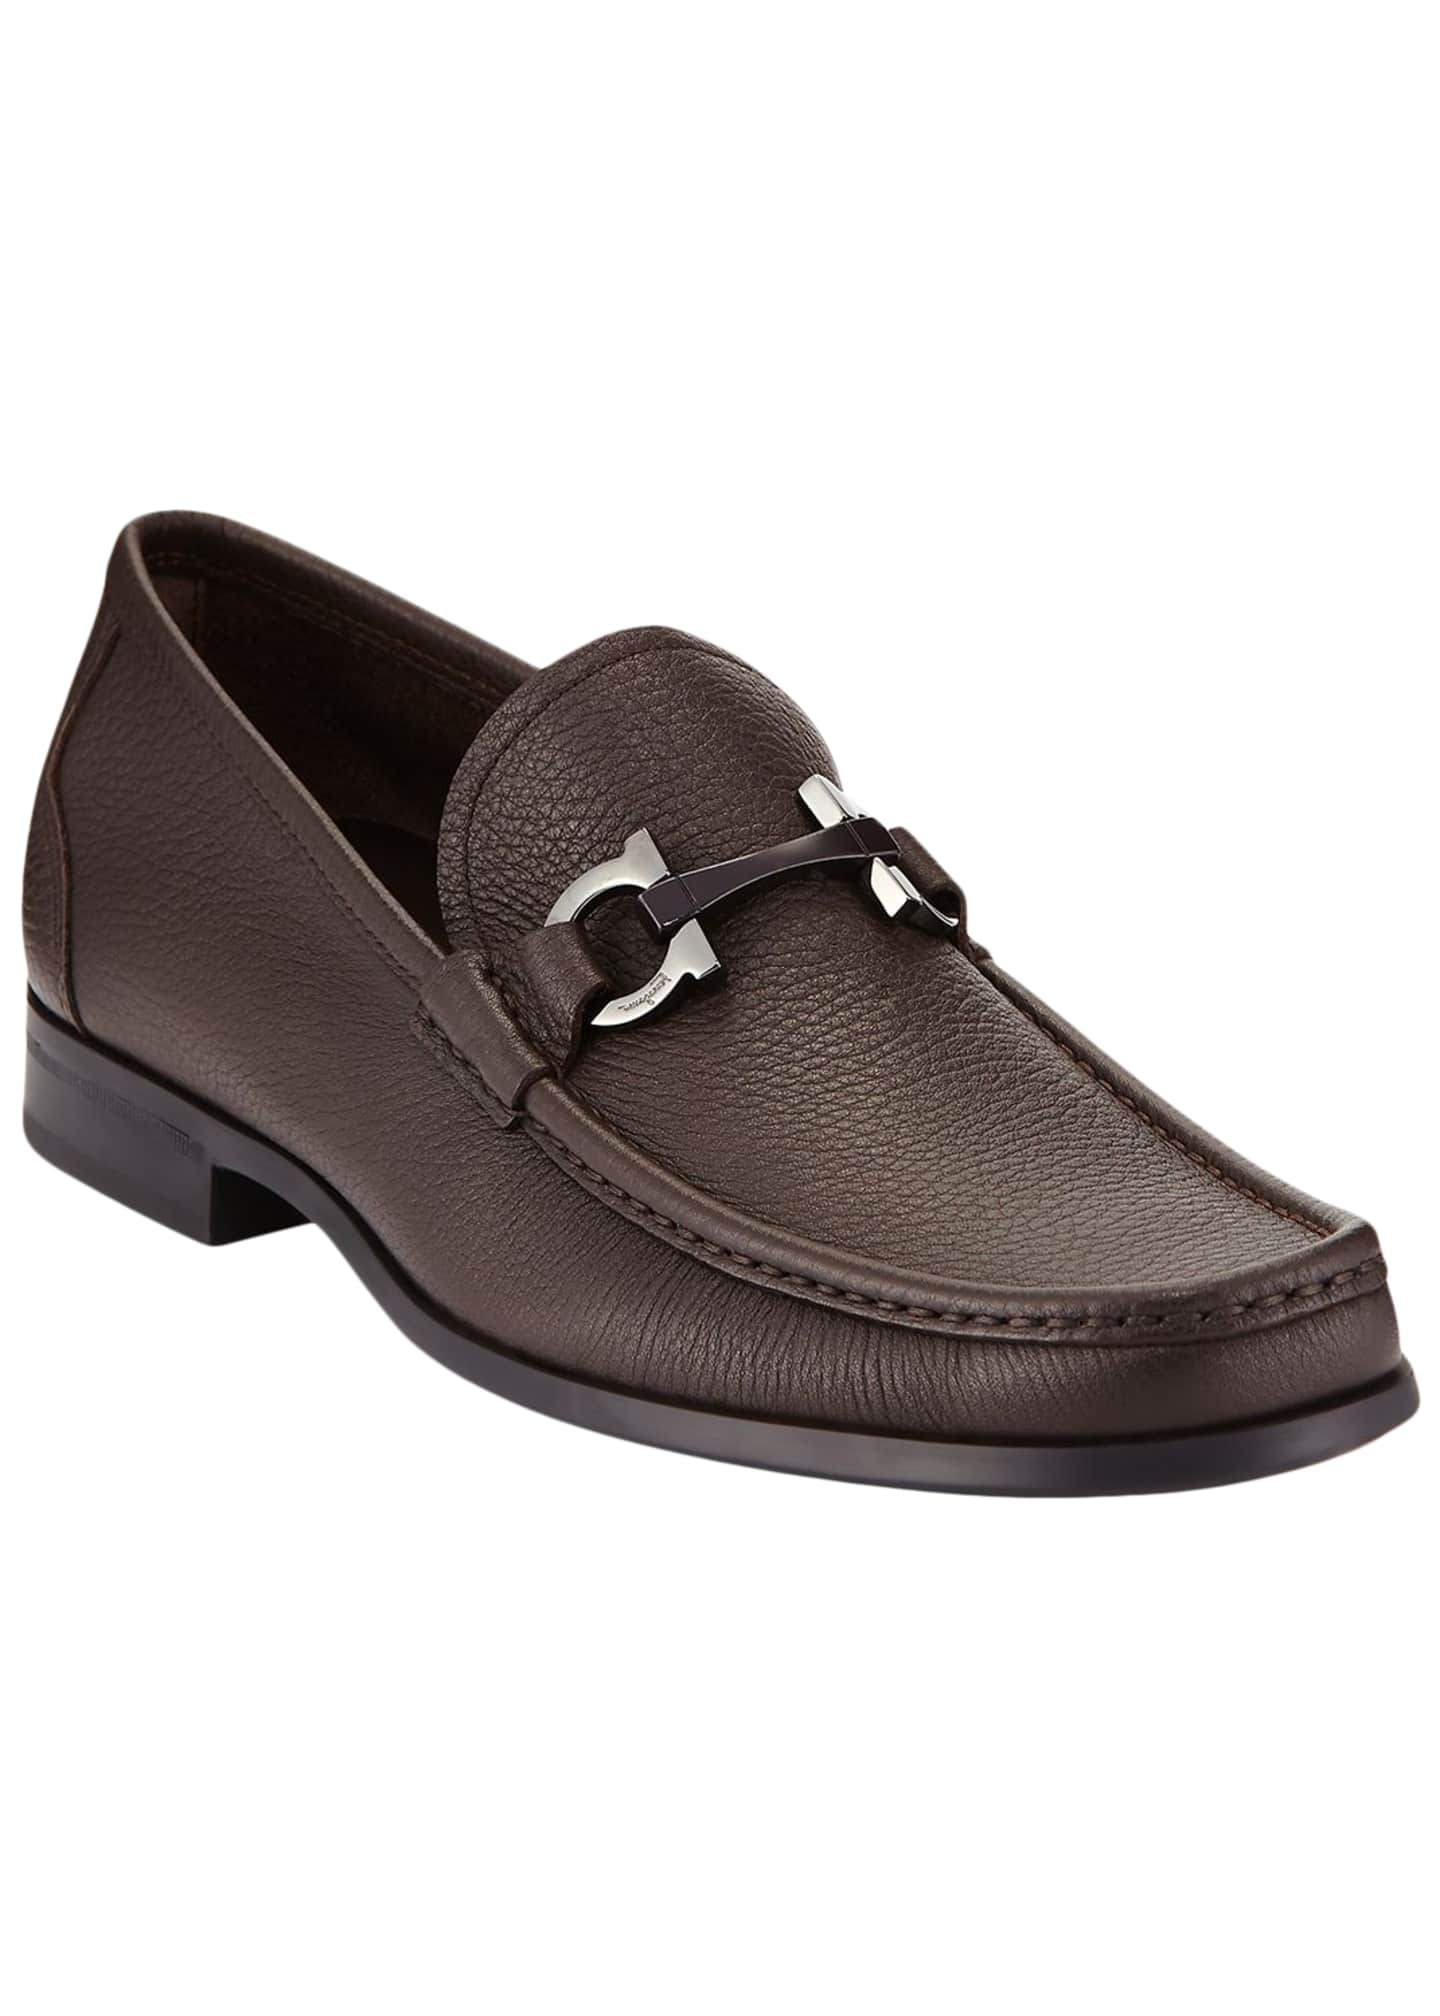 Image 1 of 5: Men's Textured Calfskin Gancini Loafer